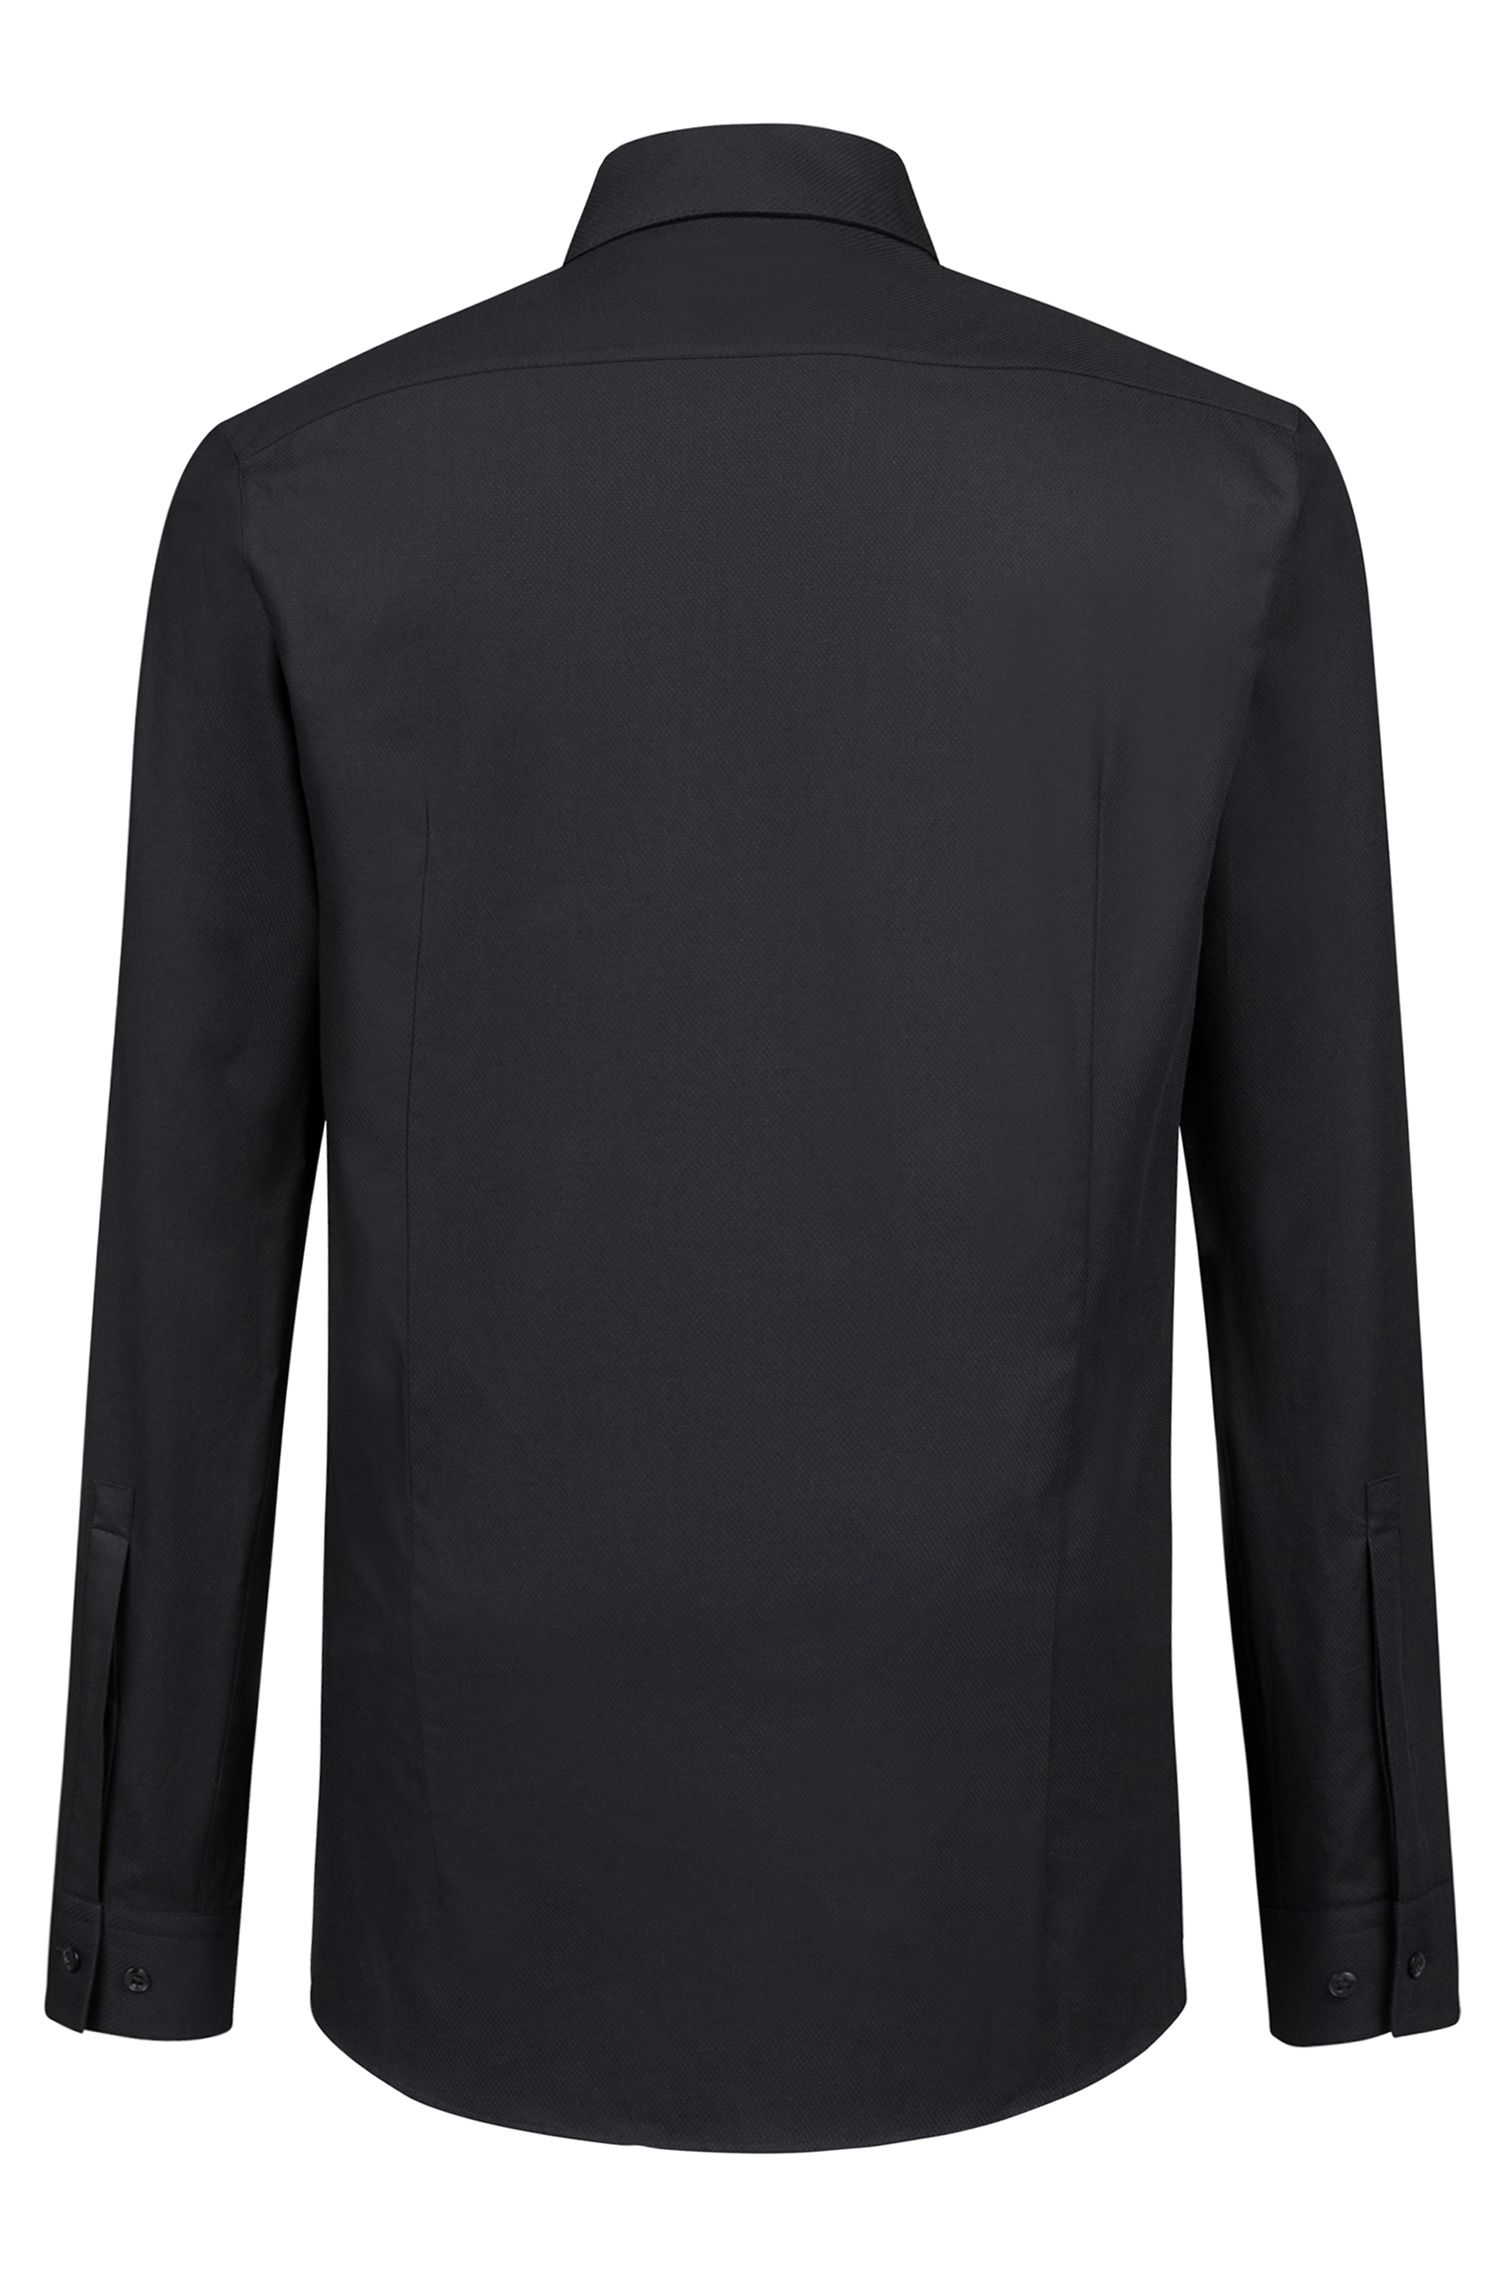 Extra-slim-fit cotton shirt with tab collar